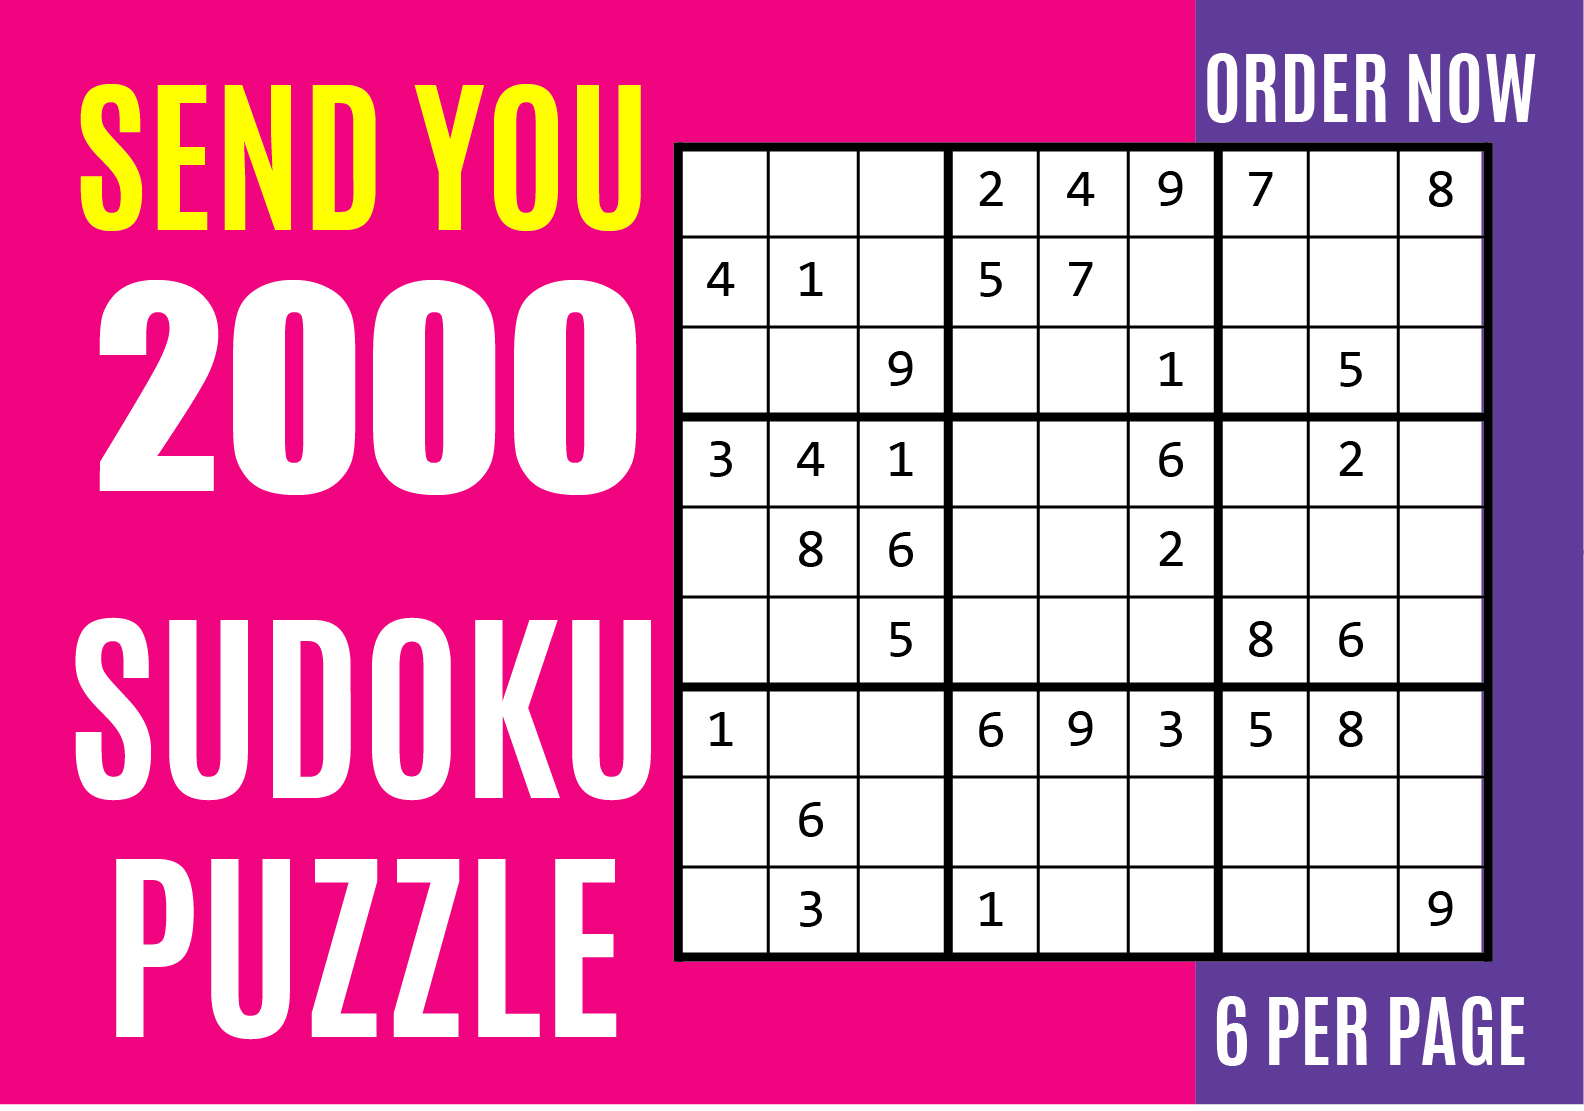 I will send you 2000 sudoku puzzles with solution